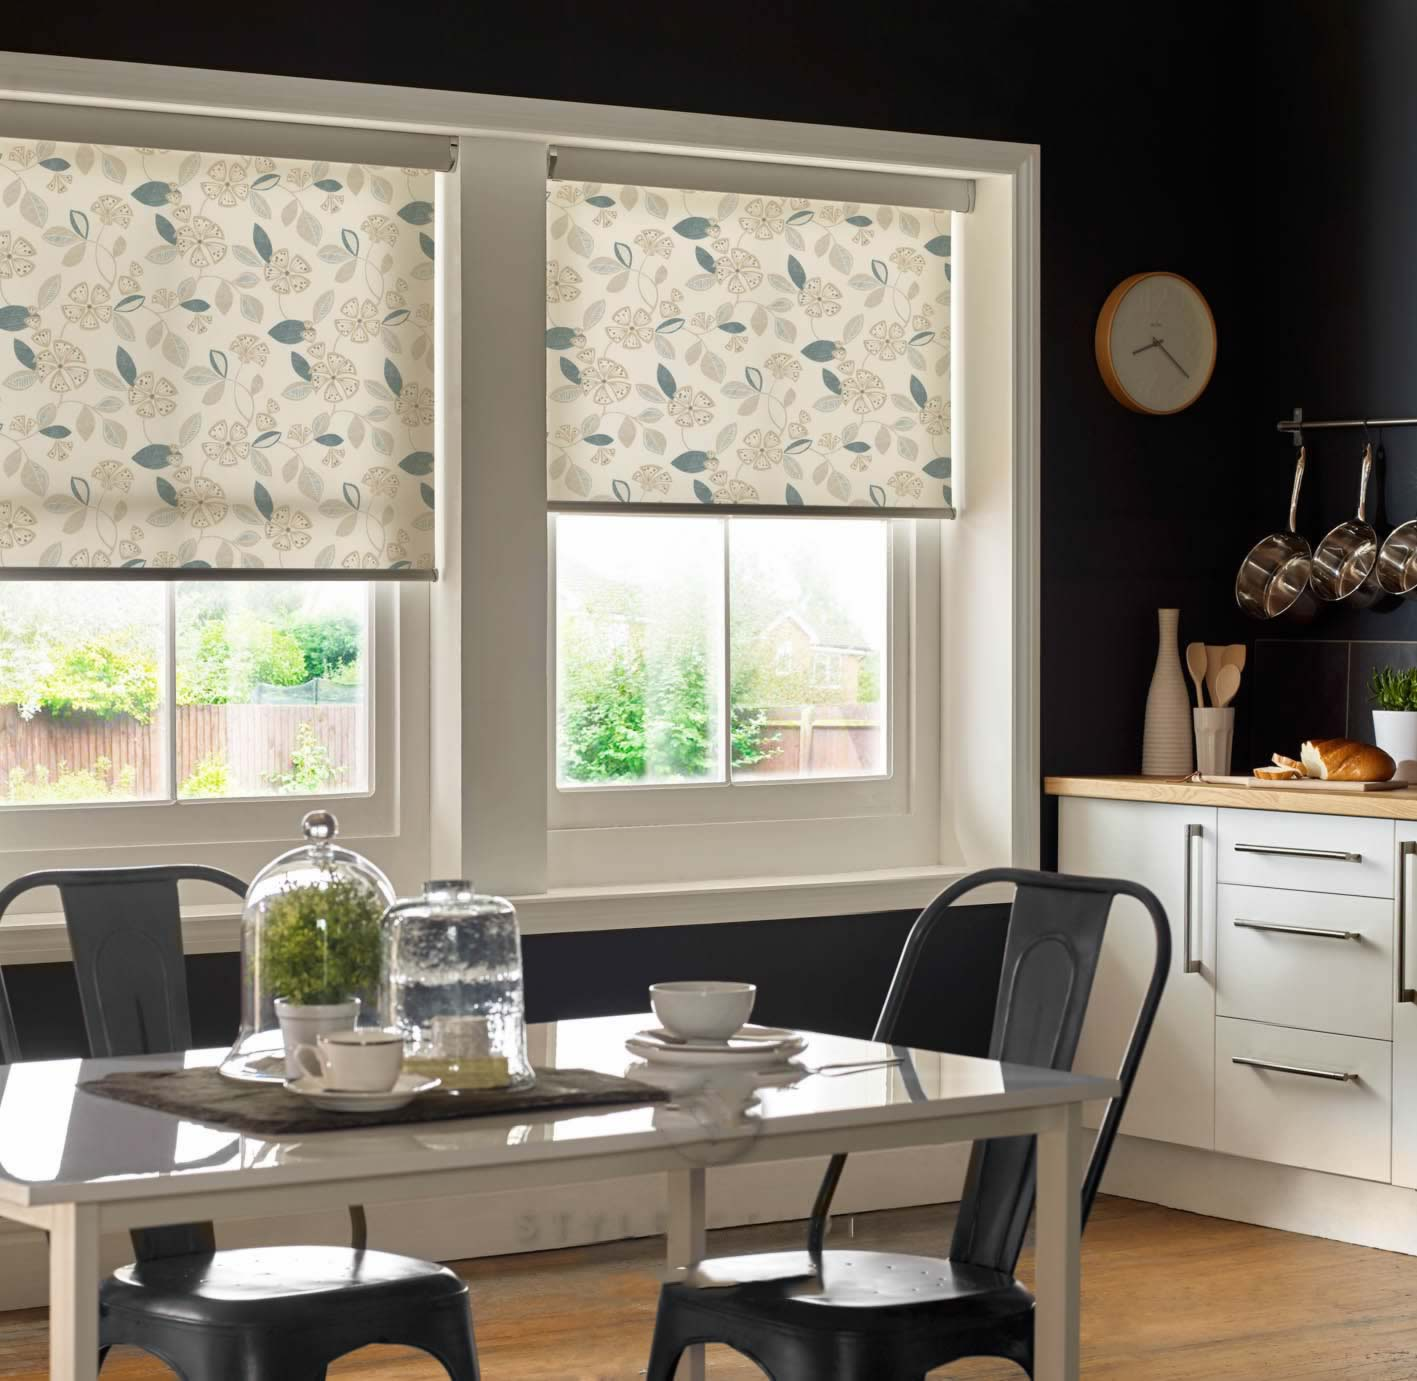 Senses Roller Blinds - Flair Neutral